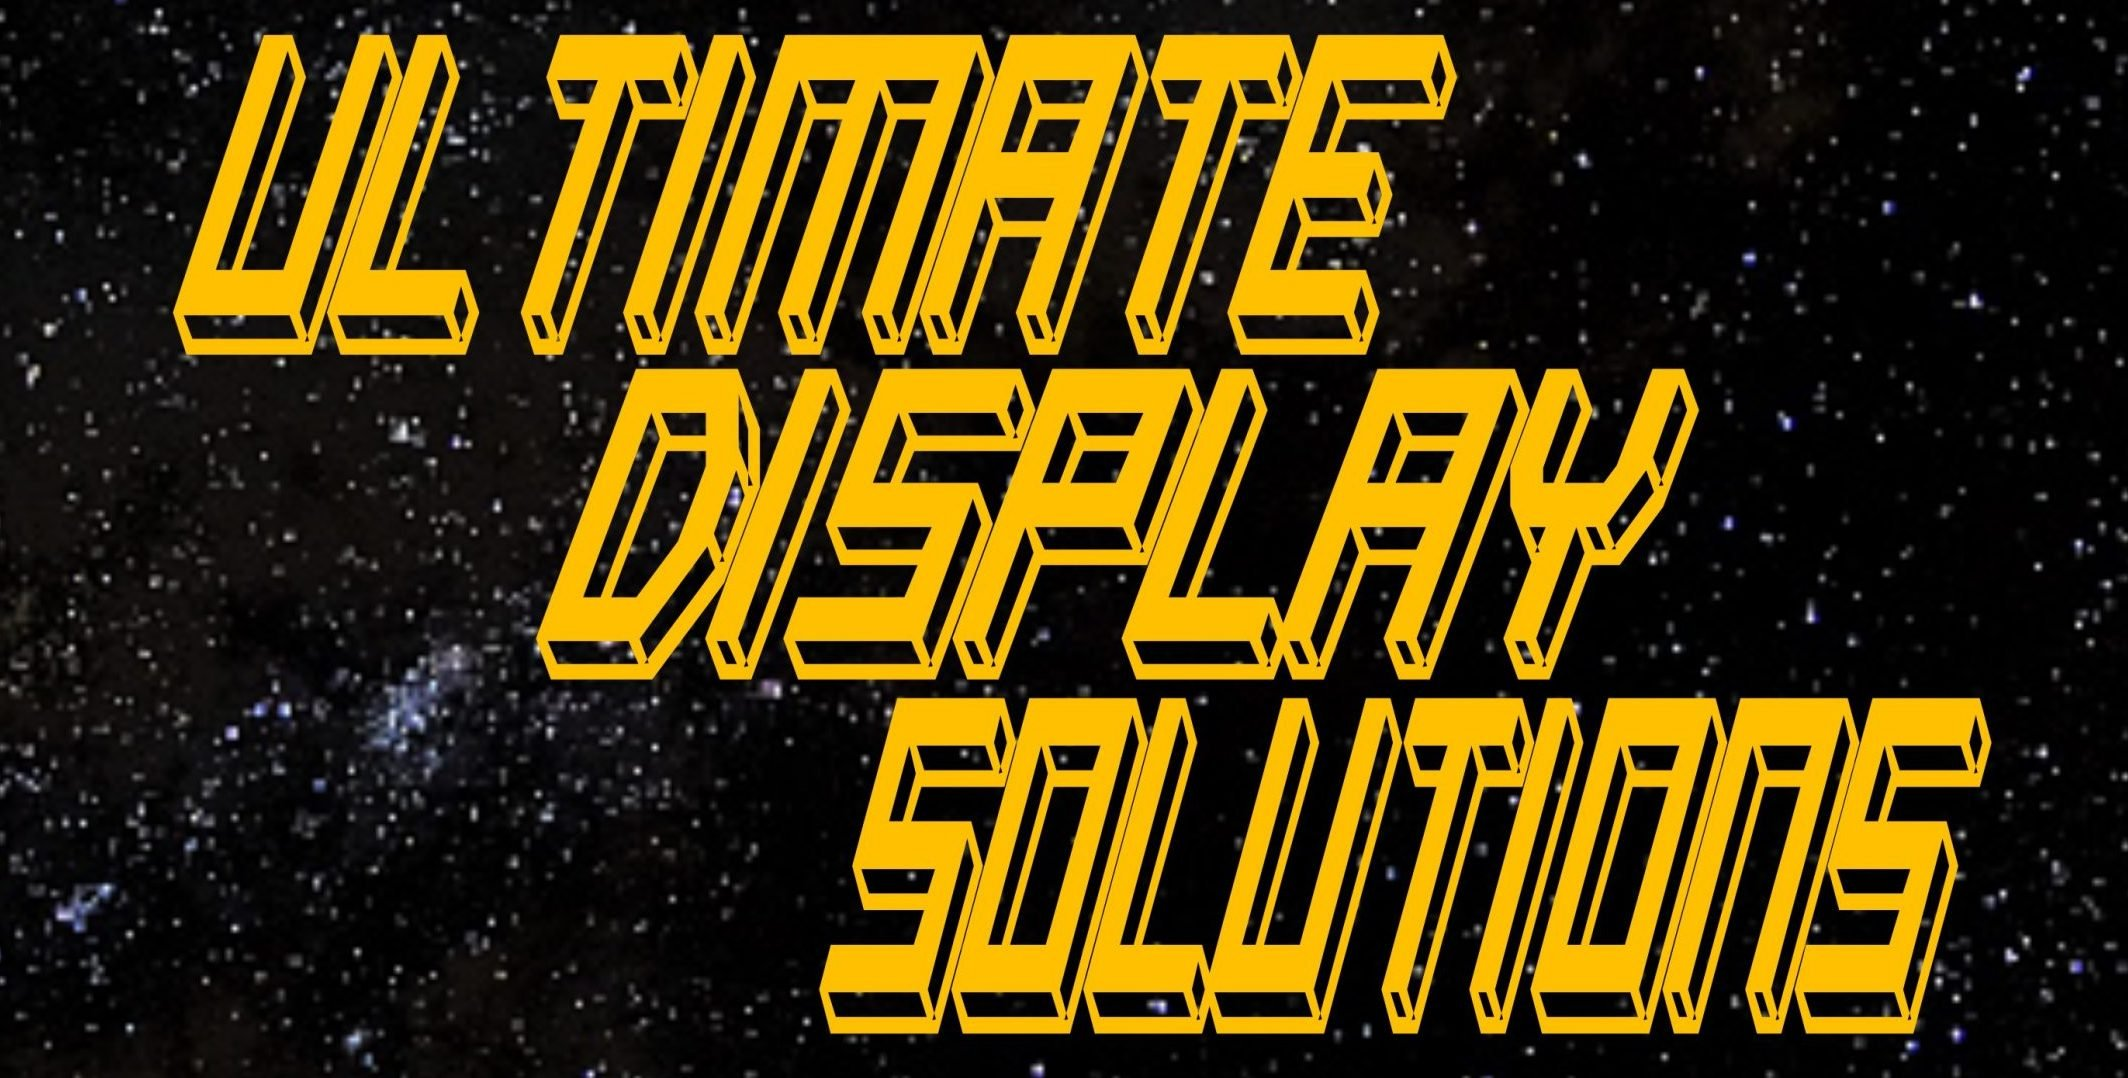 Ultimate Display Solutions